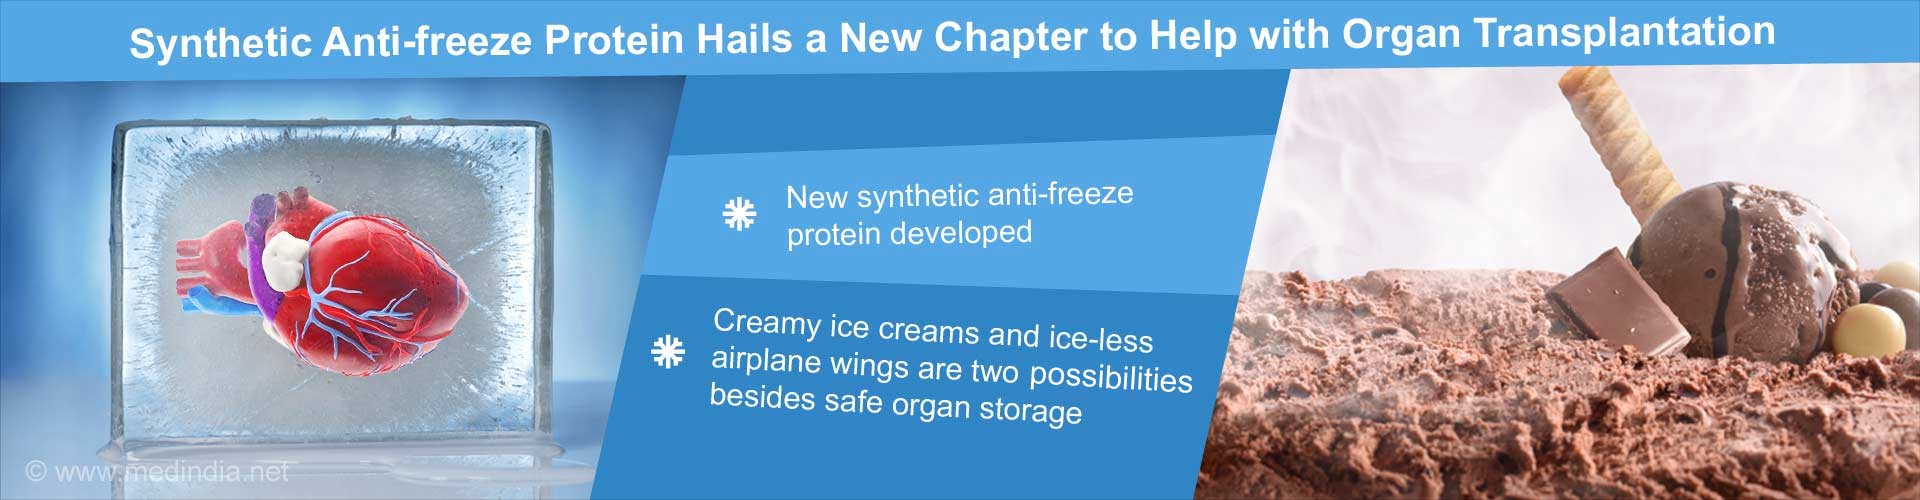 Synthetic Anti-freeze Protein Hails a New Chapter to Help with Organ Transplantation - new synthetic anti0freeze protein developed - creamy ice-cream and ice-less airplane wings are two possibilities, besides safe organ storage